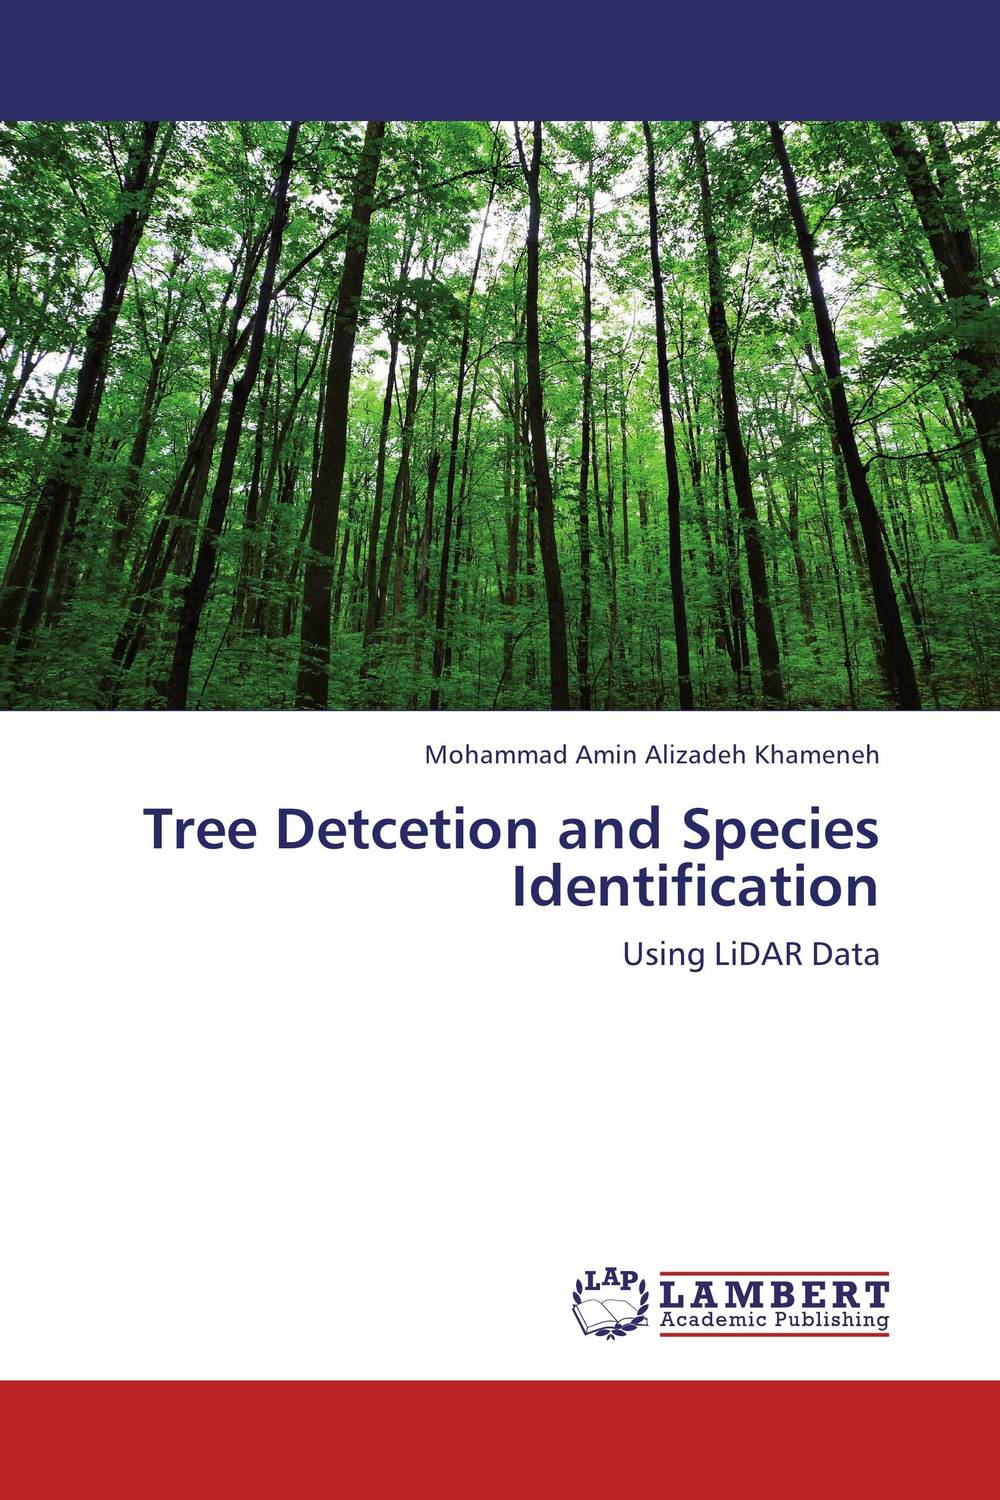 Tree Detcetion and Species Identification sumit chakravarty gopal shukla and amarendra nath dey tree borne oilseeds species